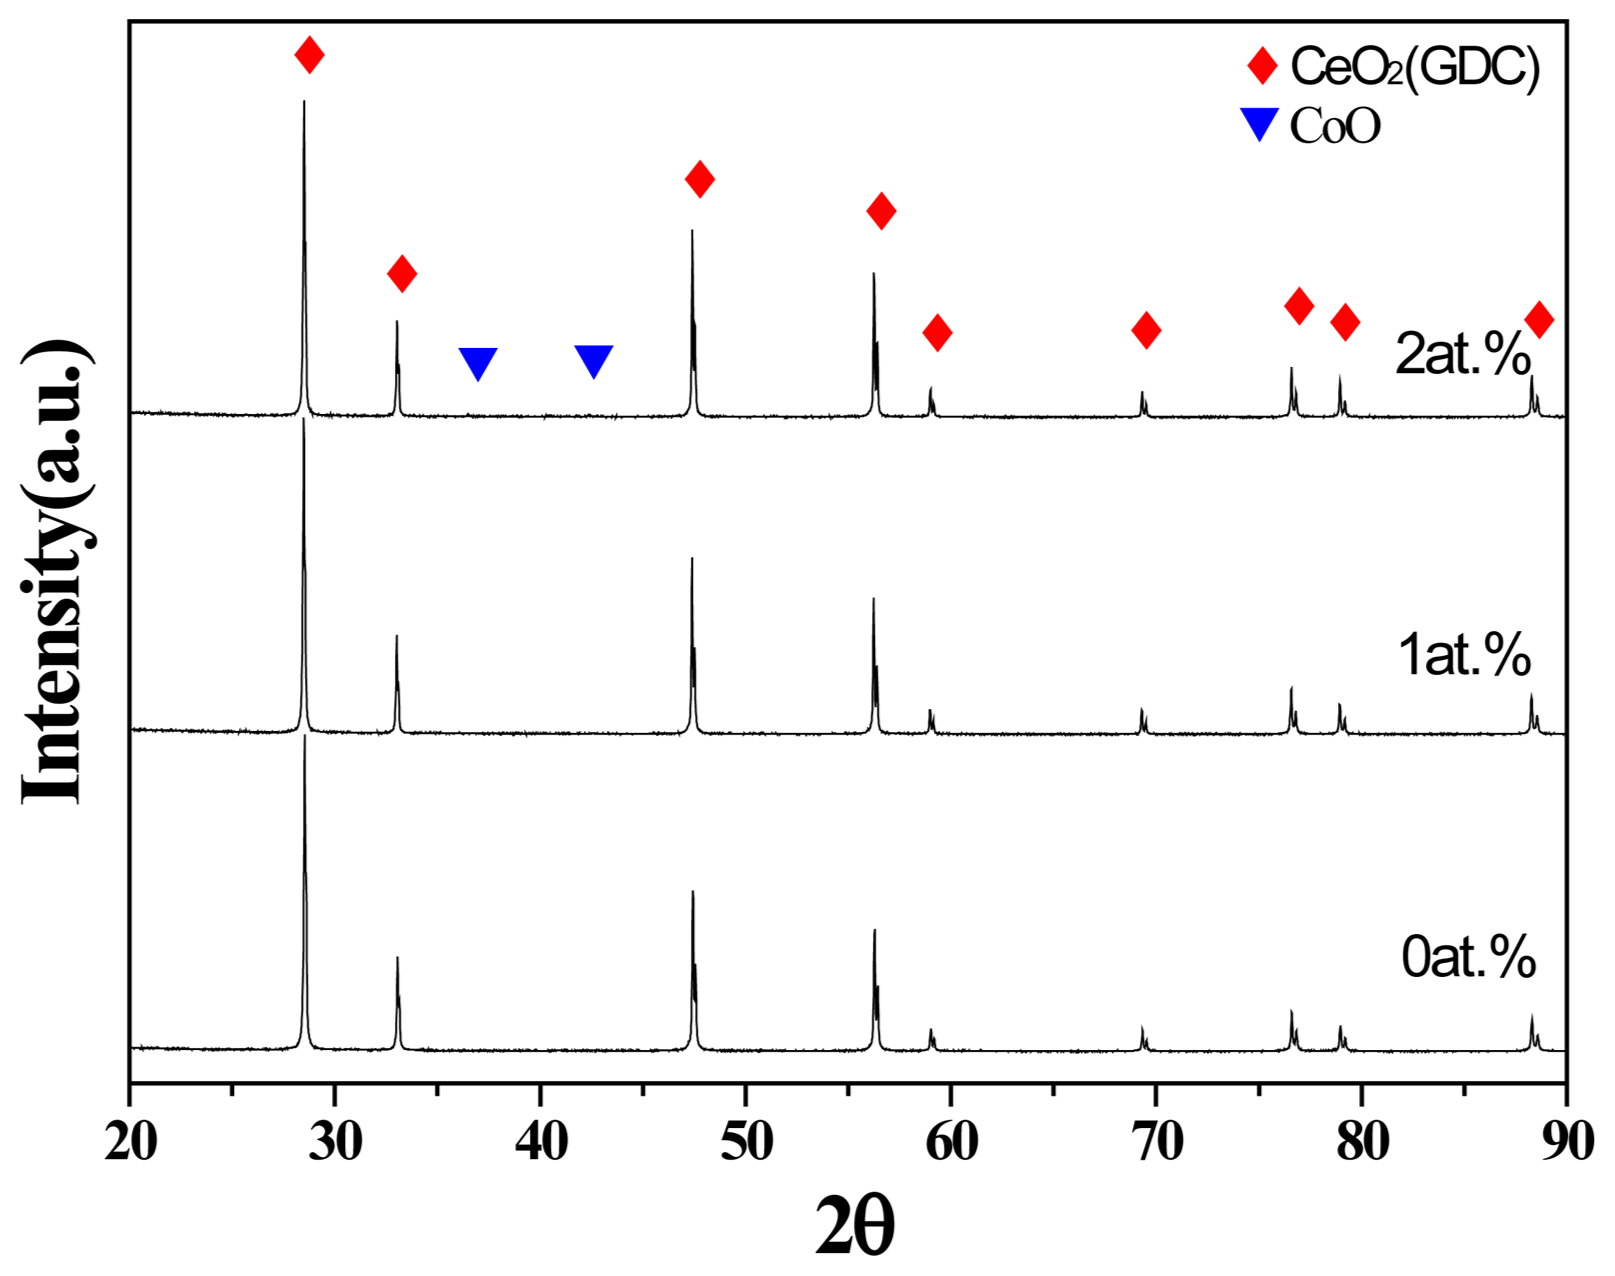 b32a8c54ae Effects of Co-doping on Densification of Gd-doped CeO2 Ceramics and ...